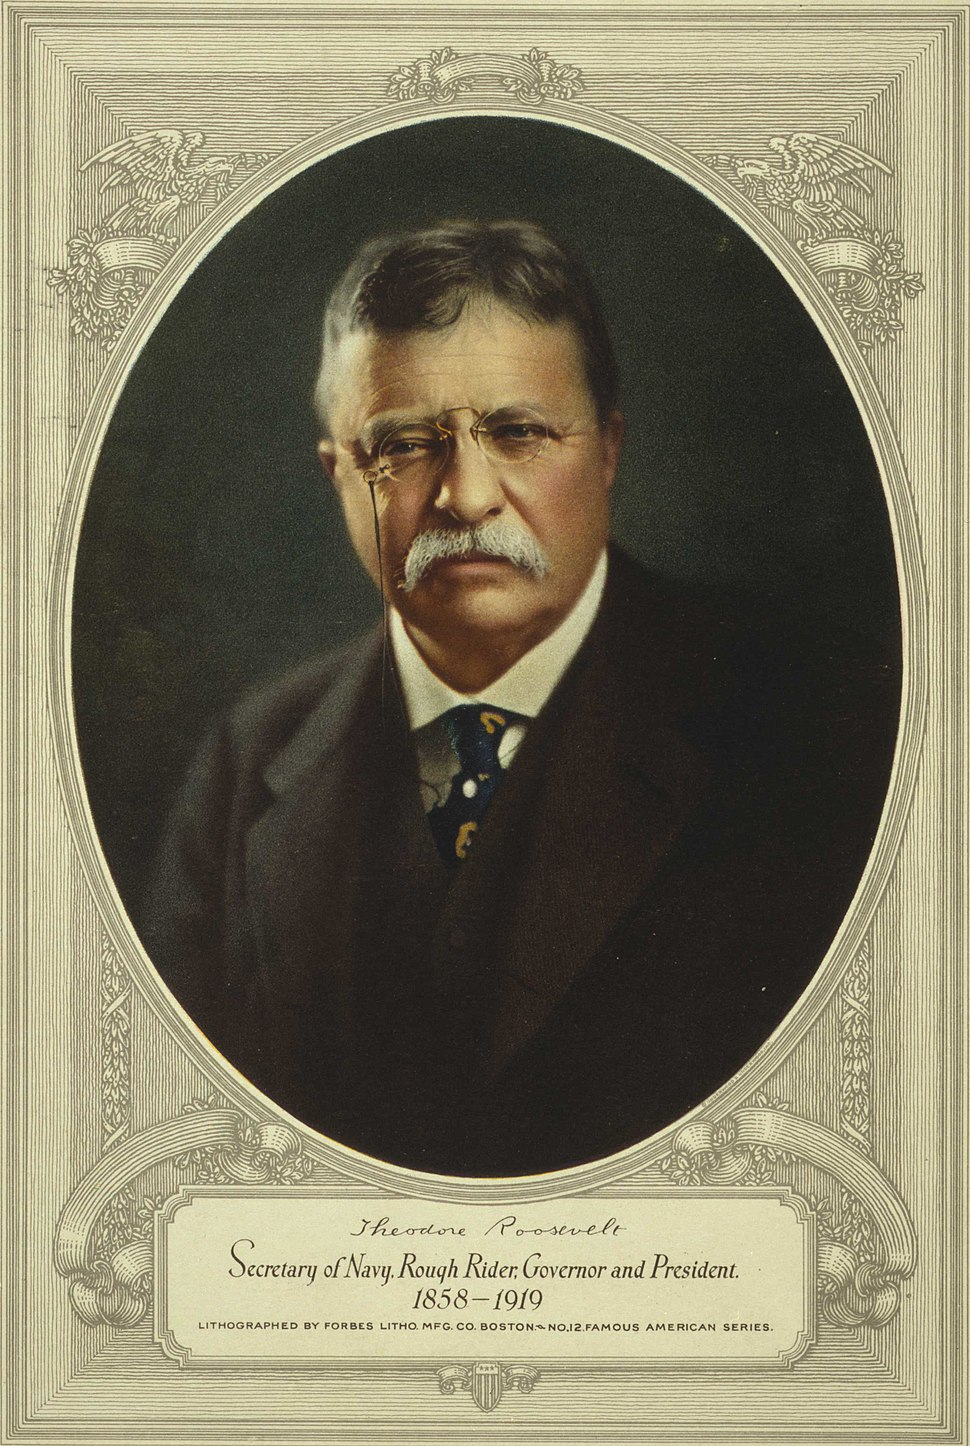 Theodore Roosevelt, color painting circa 1920-1940